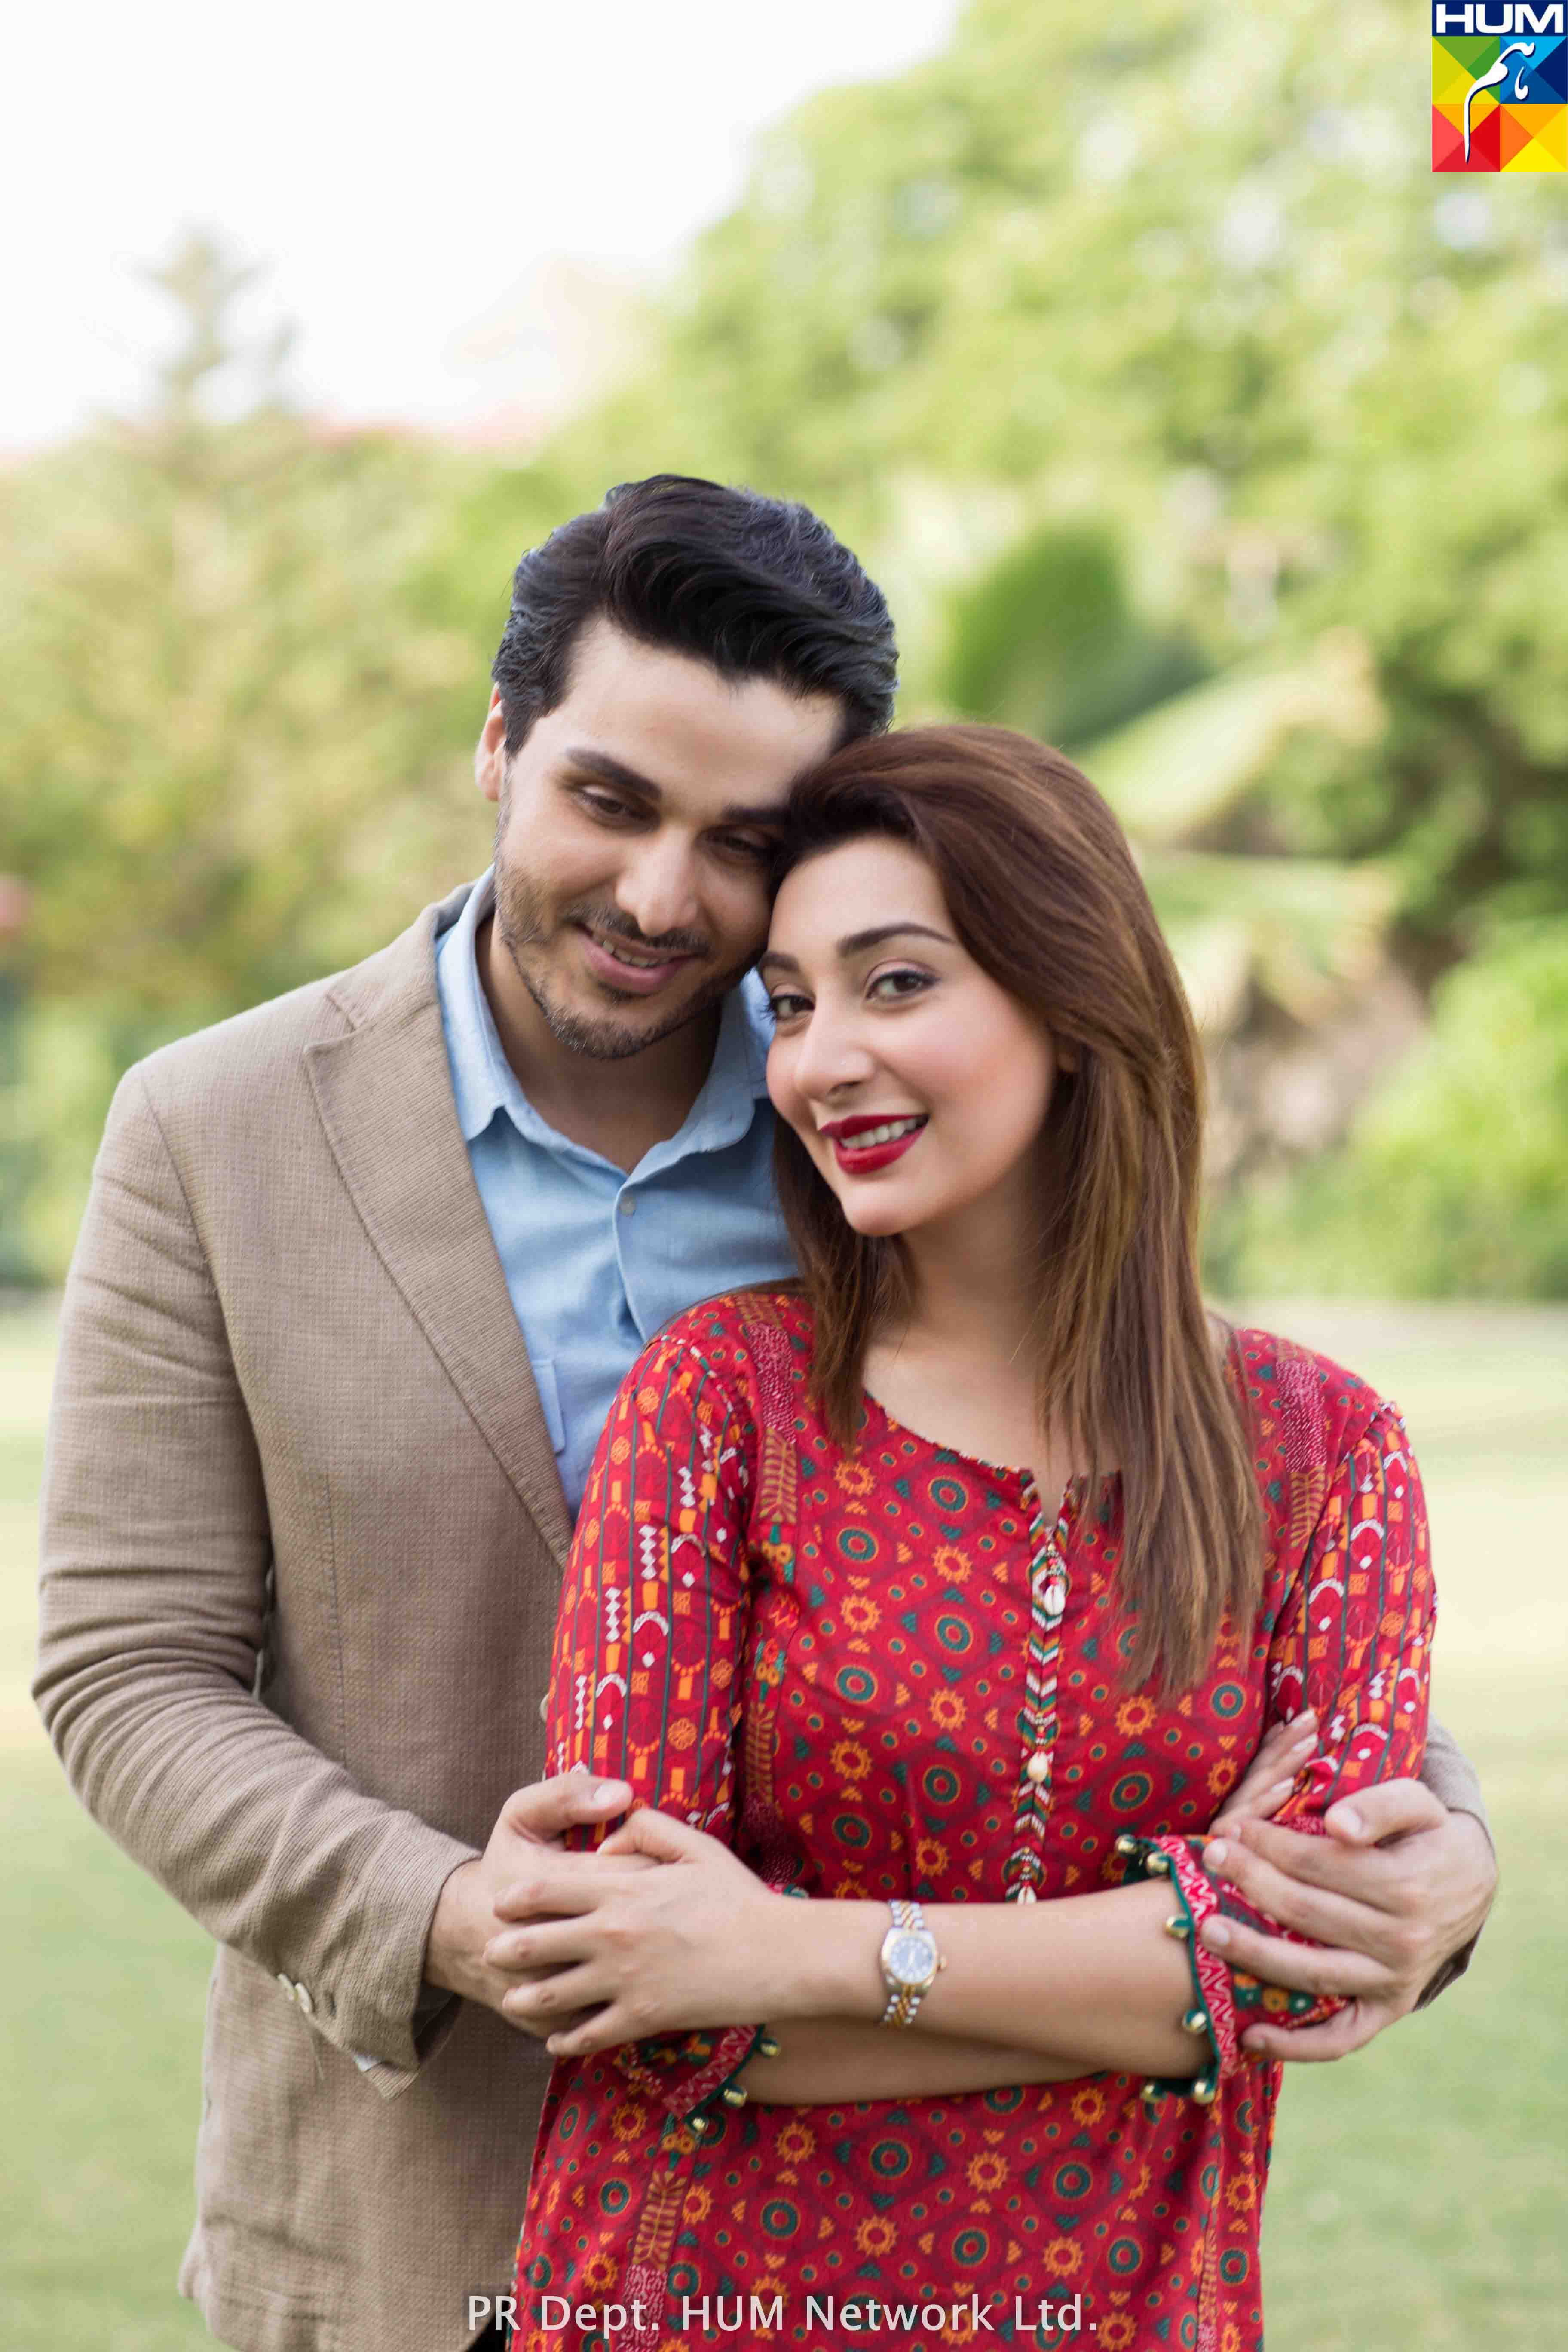 Synopsis and Pictures of HUM Tv Drama